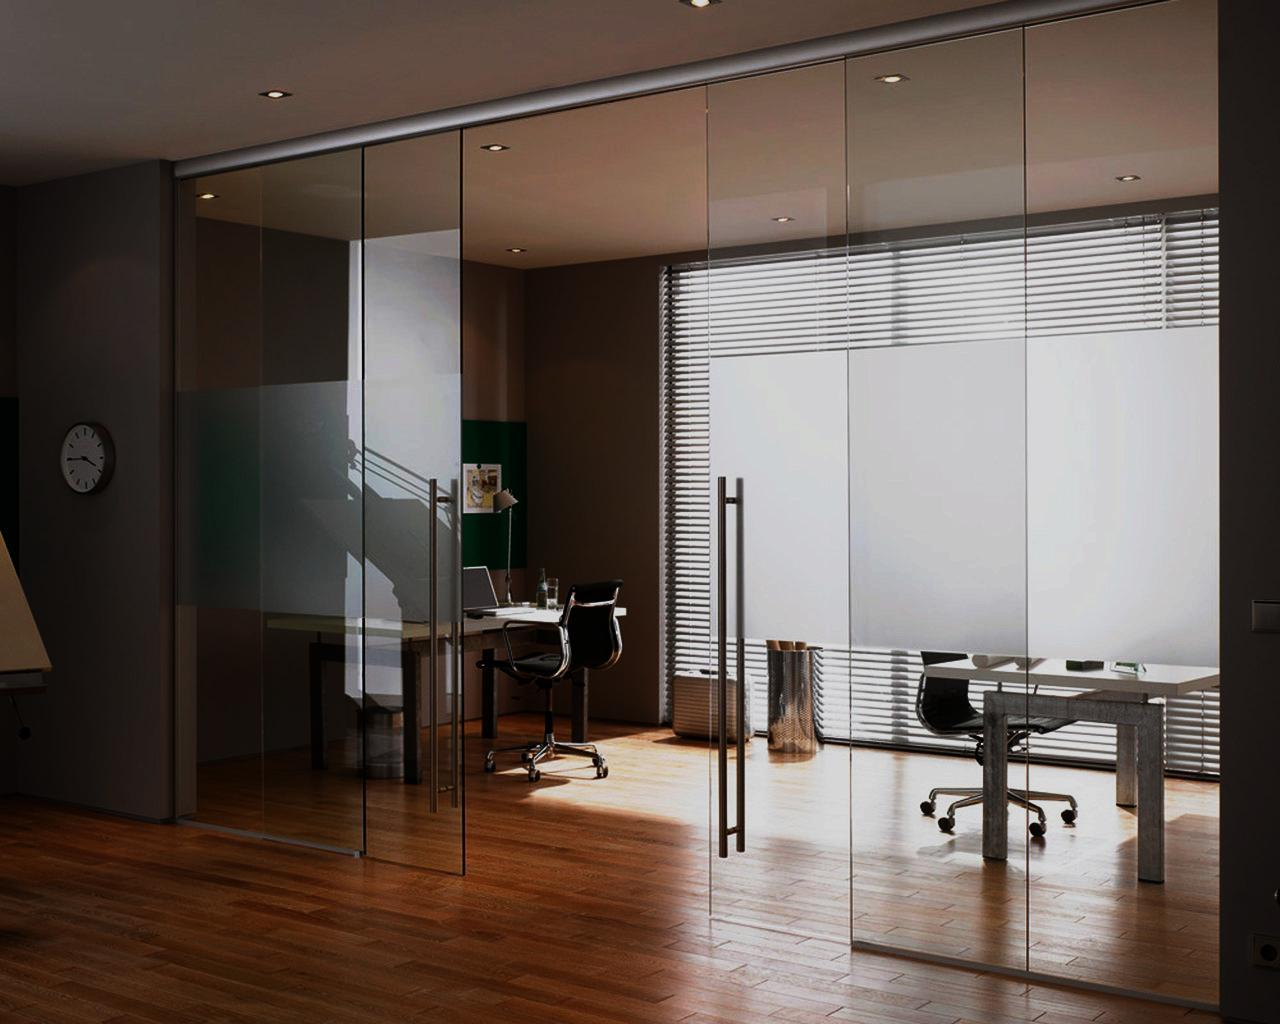 Negotiation room zoned with glass wall